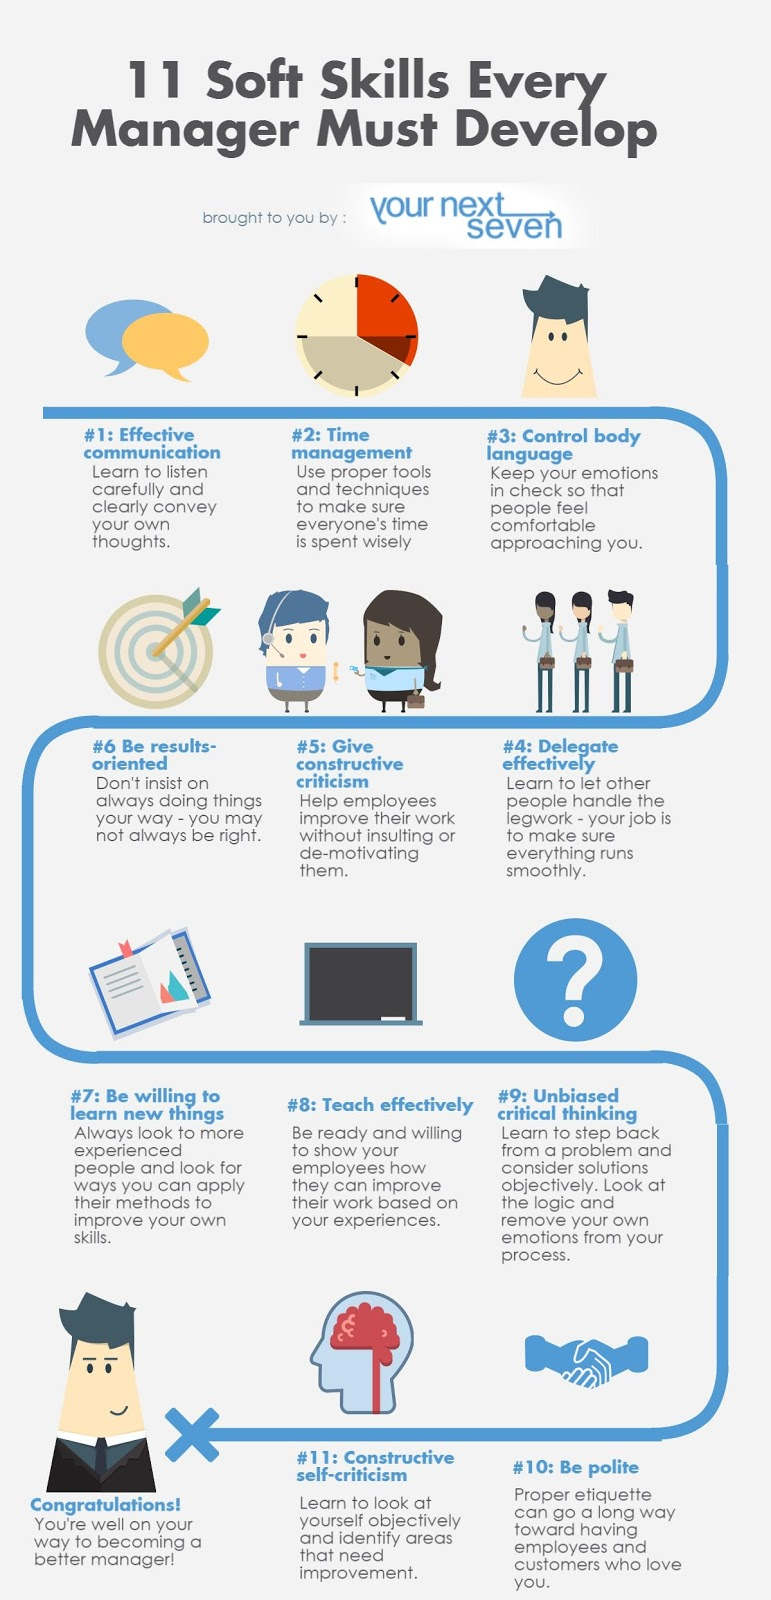 11 Soft Skills Every Manager Must Develop Infographic